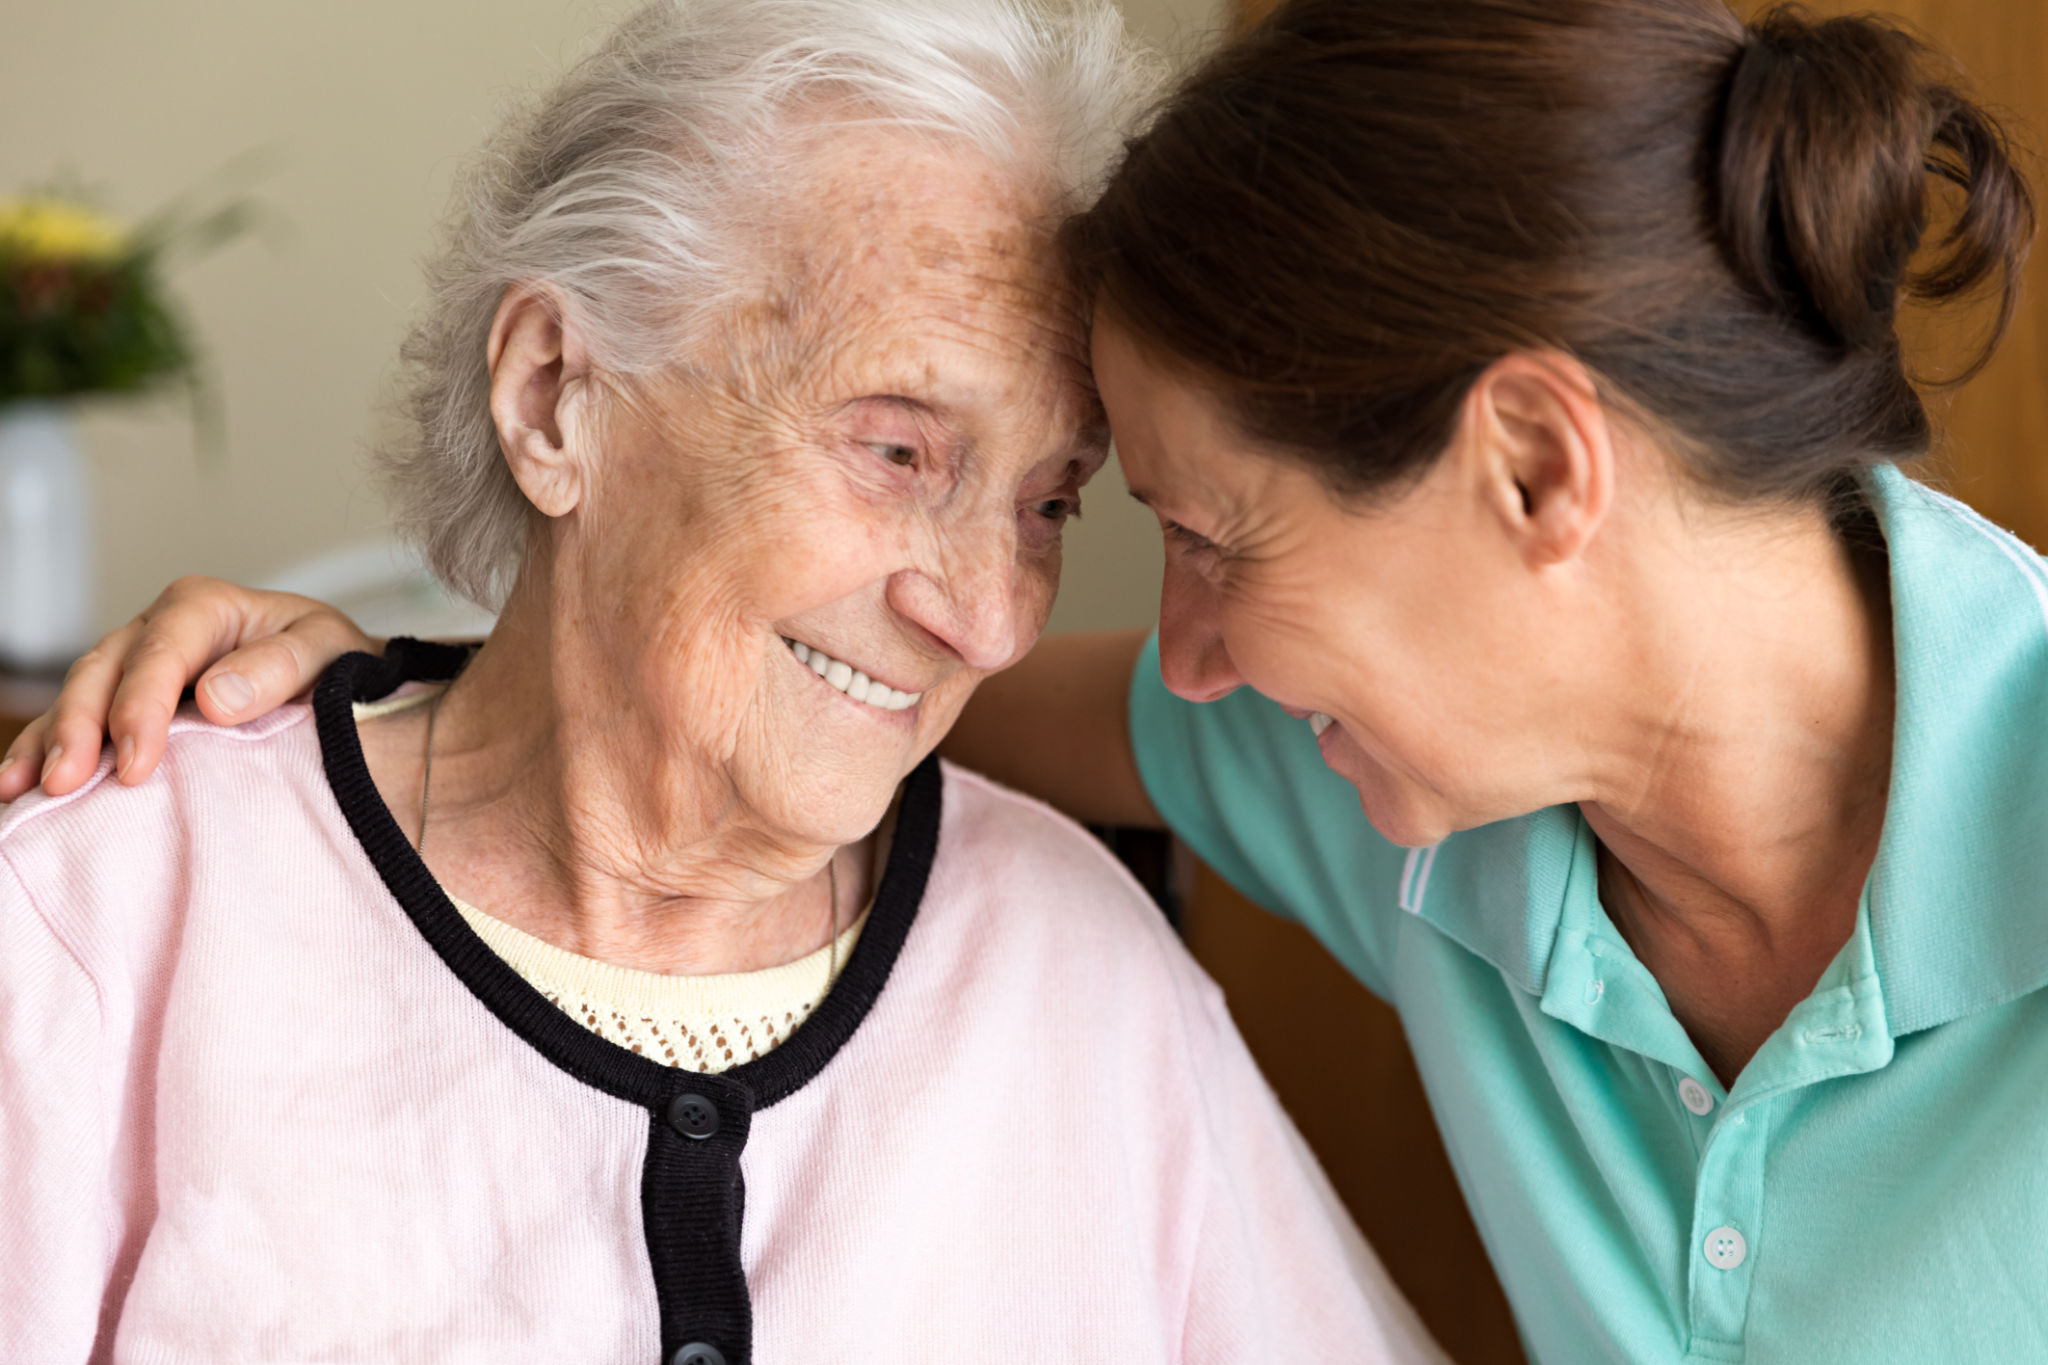 hospice criteria for dementia patients